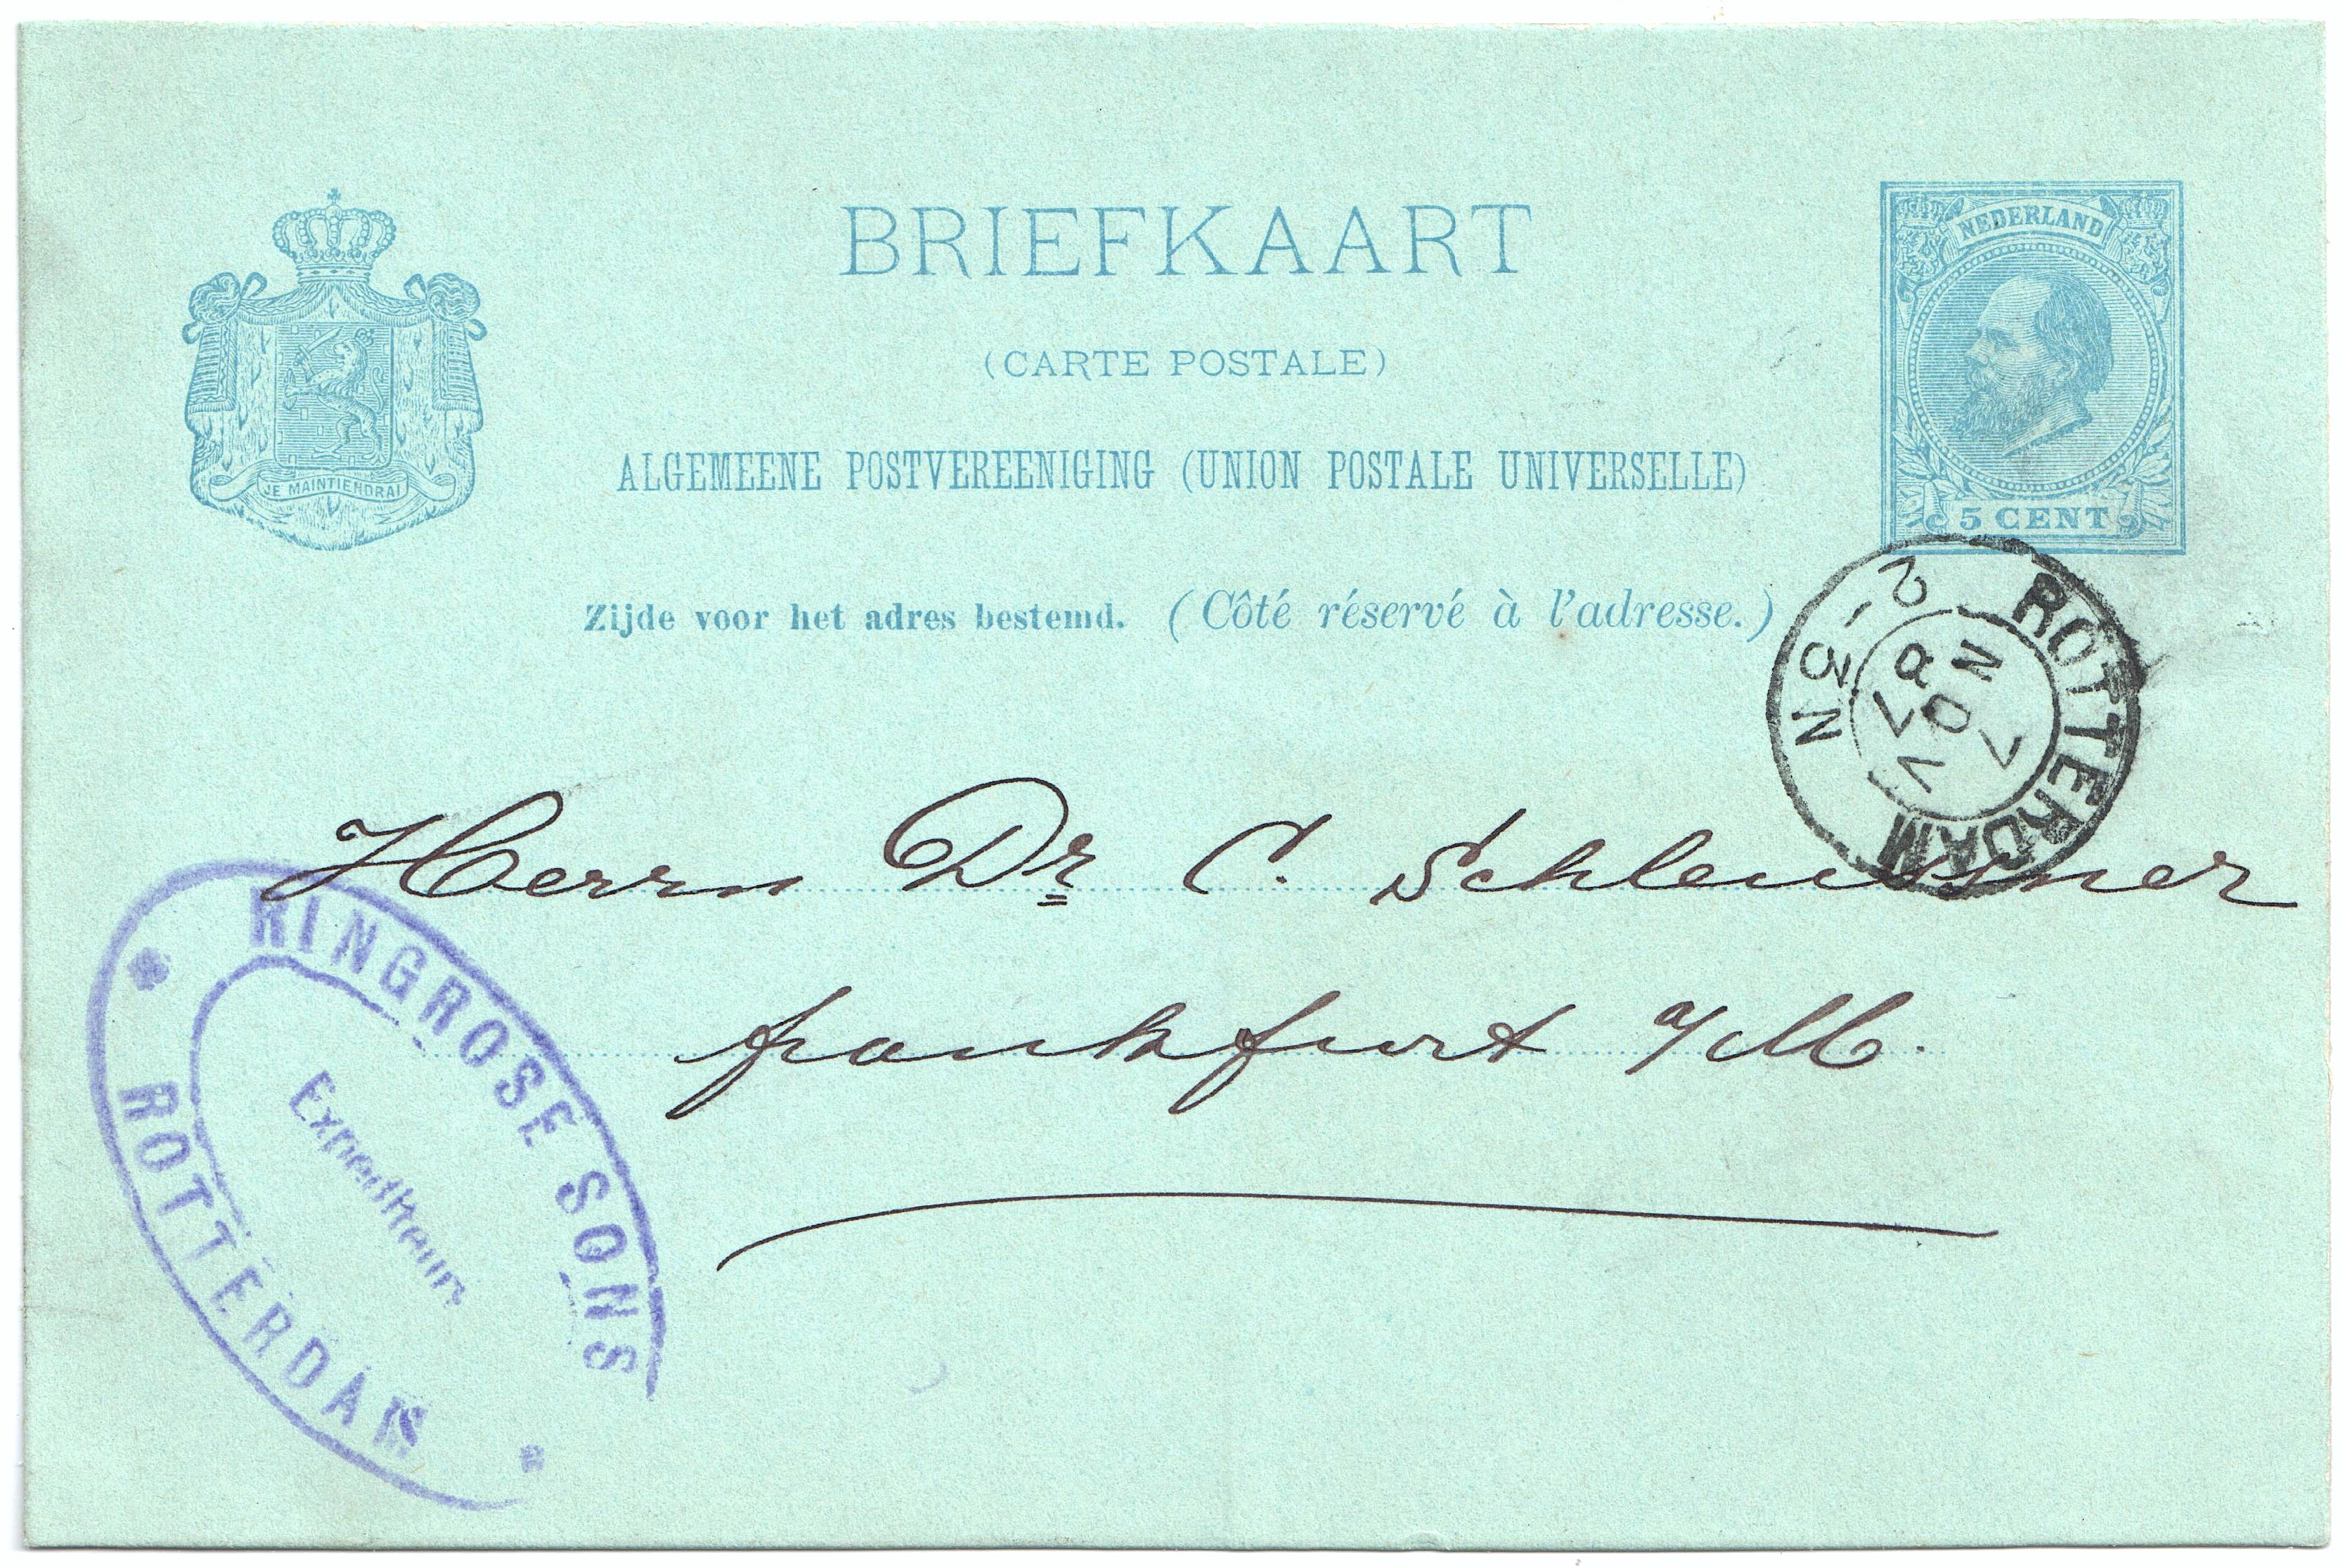 Briefkaart Wikipedia